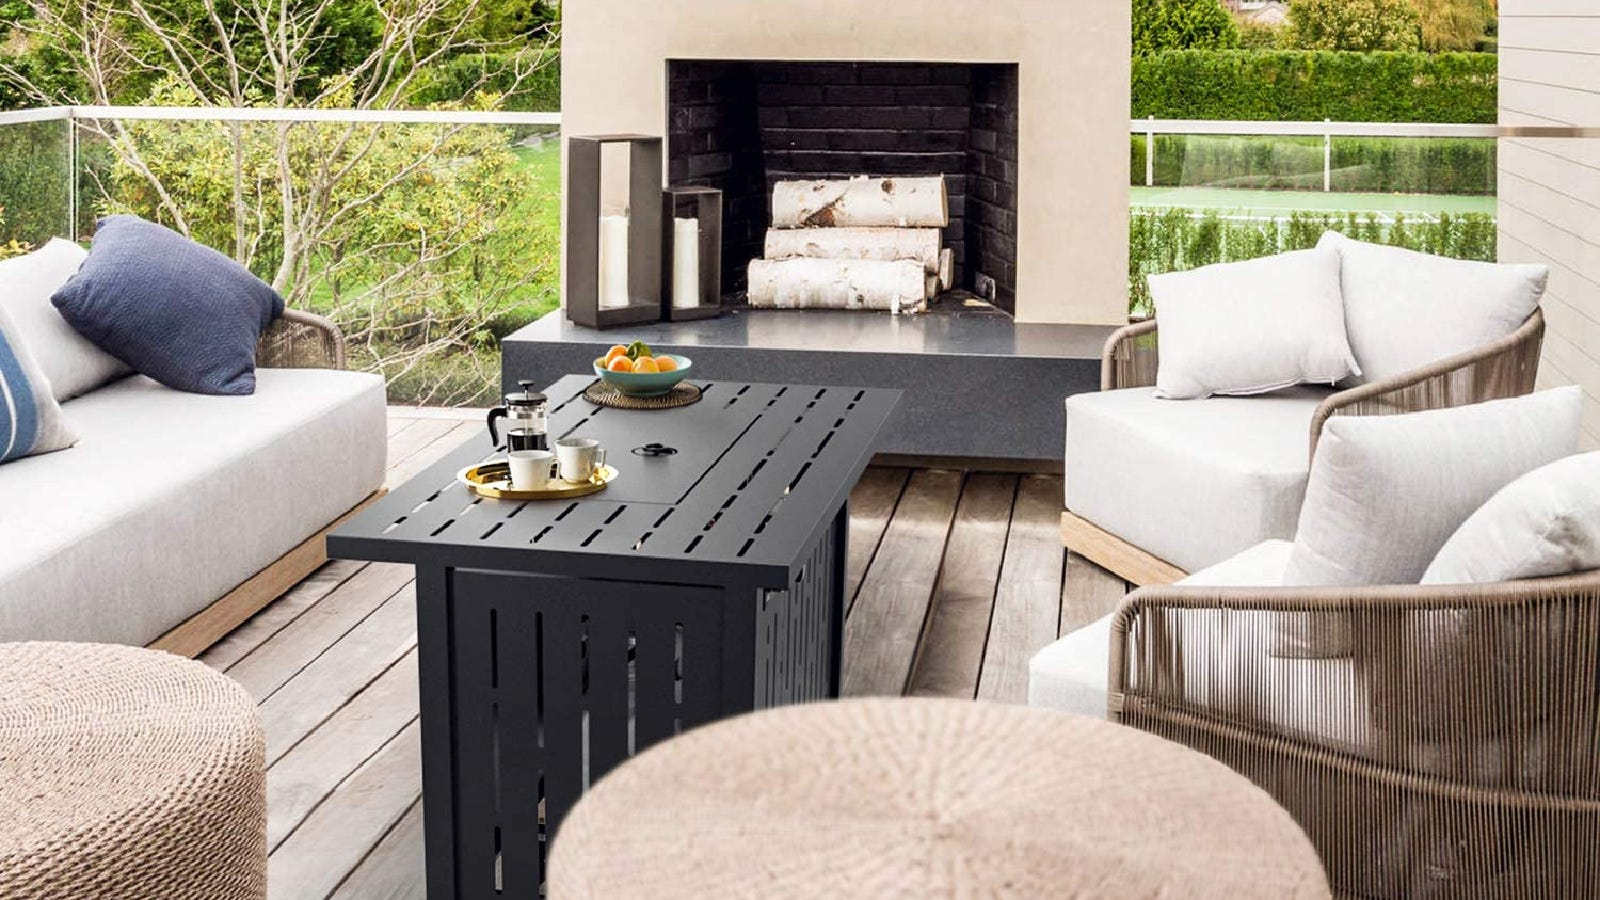 A rectangular SNAN fire table placed in the middle of lovely off-white patio furniture outdoors, with a couple coffee cups and a French press coffee maker.